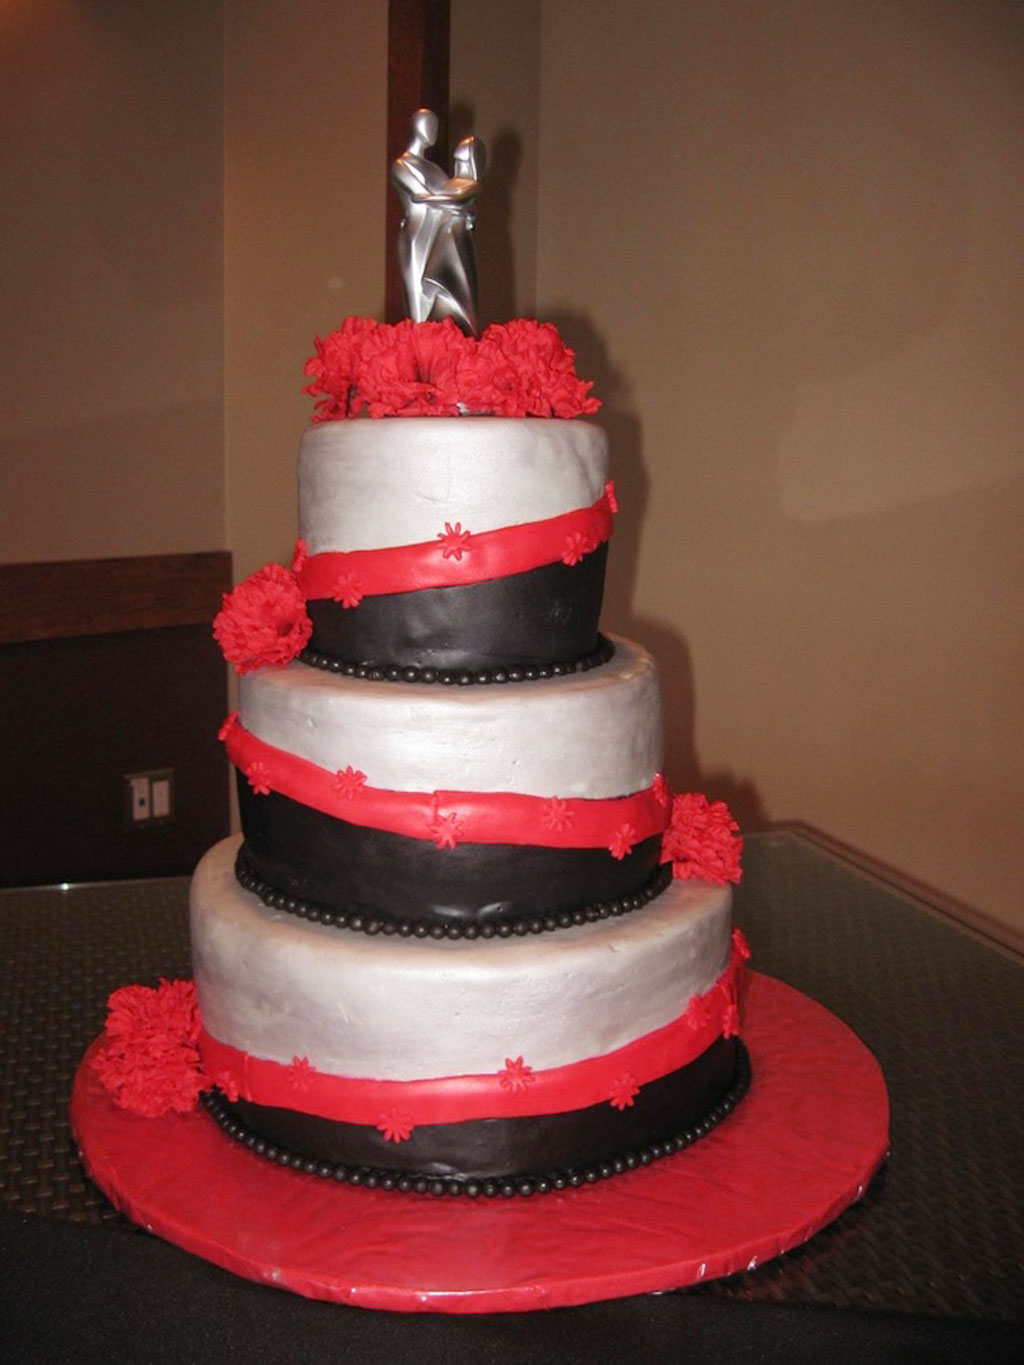 Delicieux Red Black Silver Wedding Cake Picture In Wedding Cake